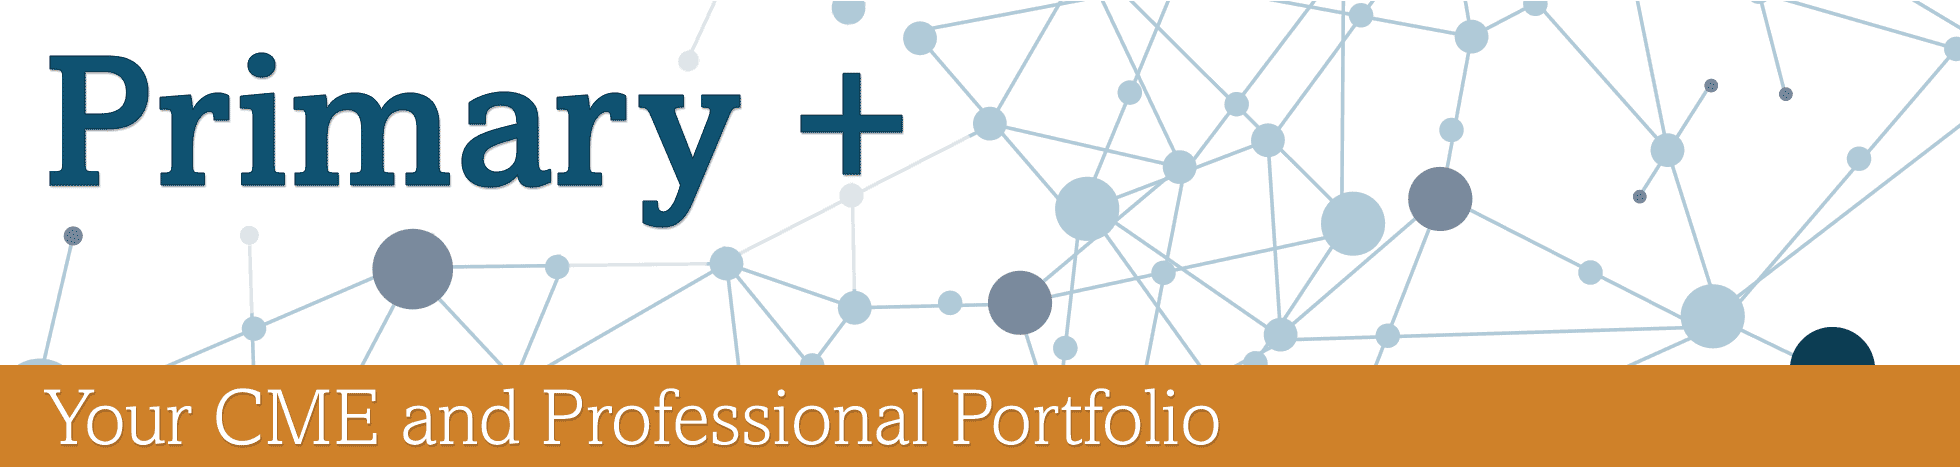 Primary + Your CME and Professional Portfolio